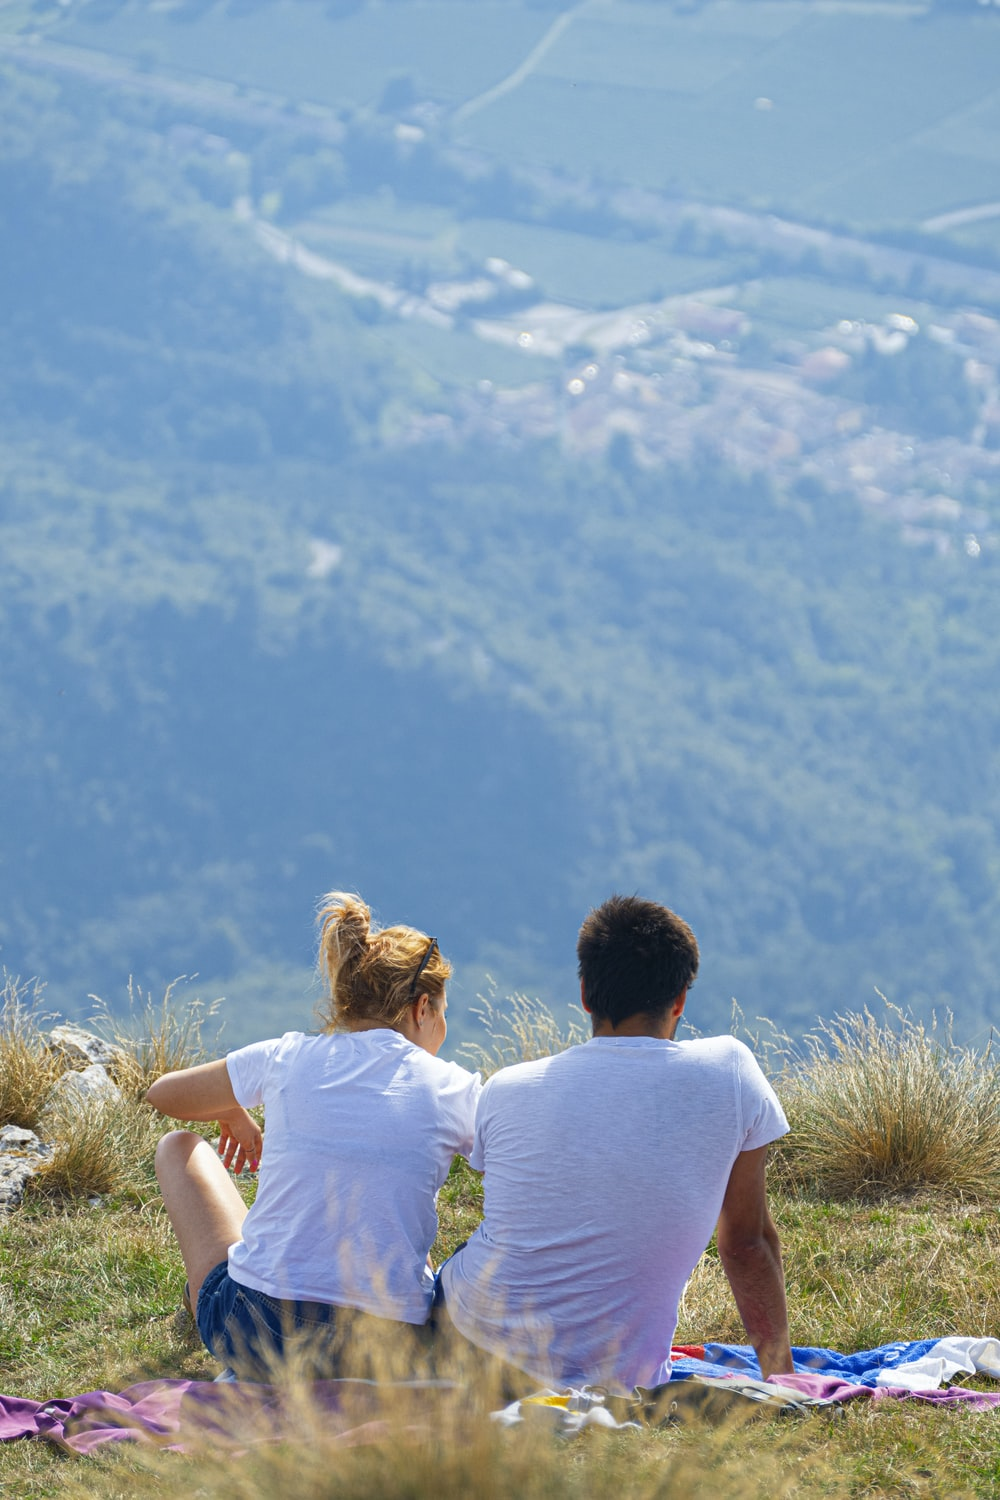 man iand woman in white shorts sitting on hill